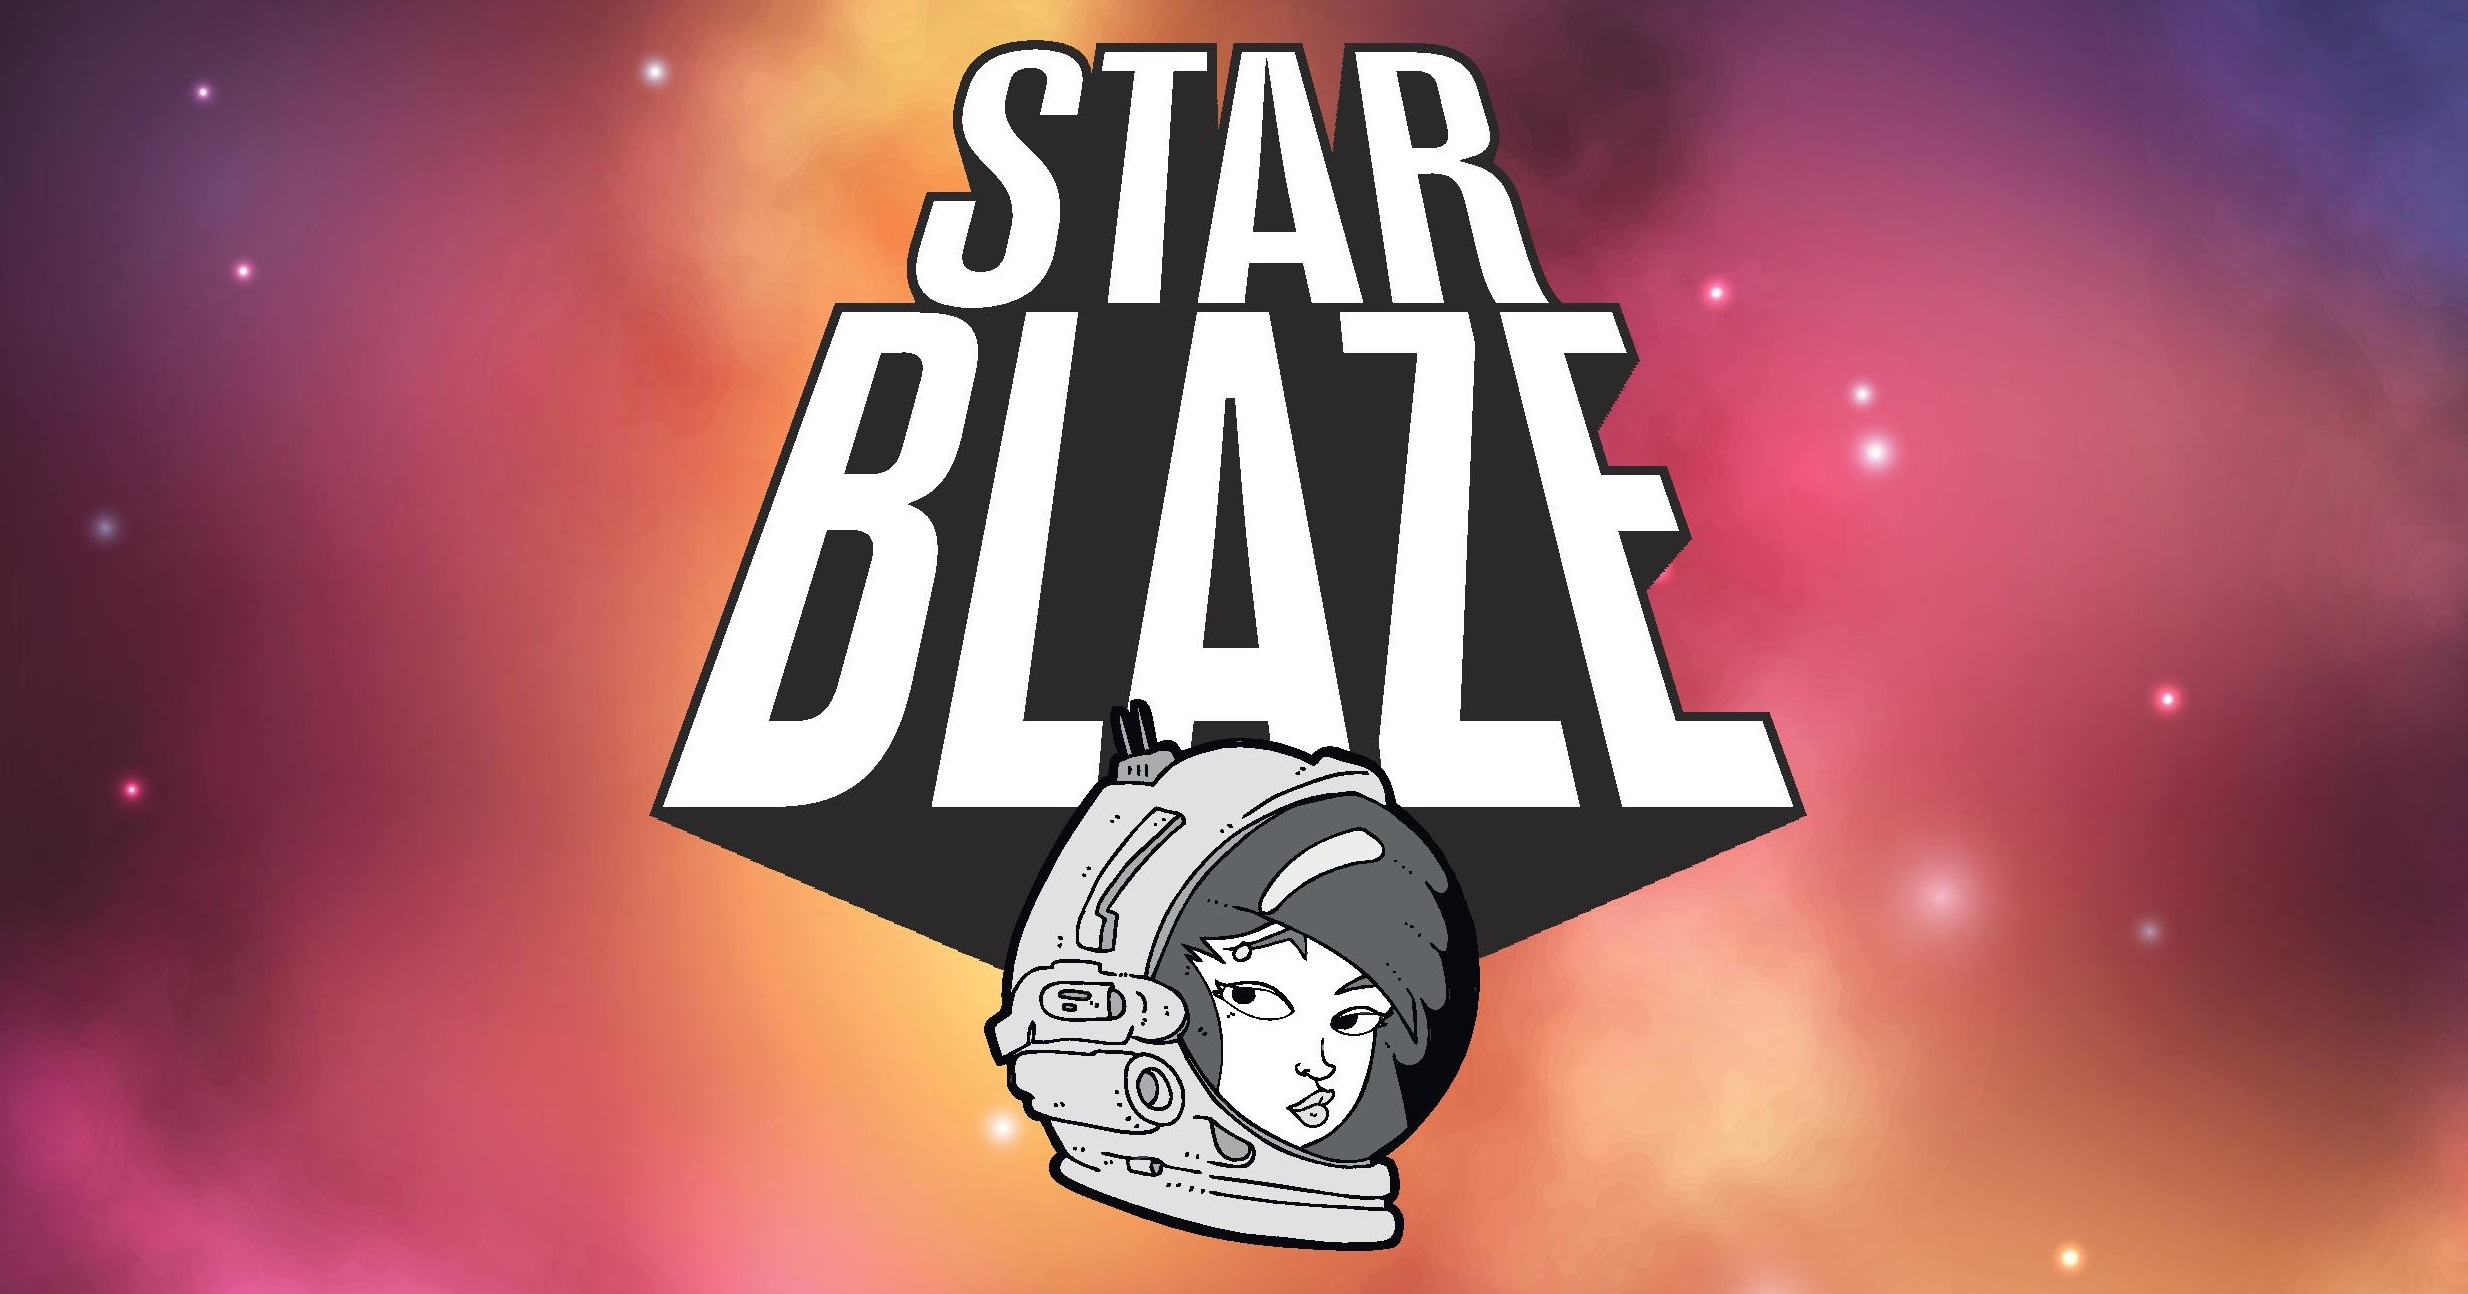 Starblaze - 20-28 April 2018Starblaze is a contemporary fantasy rock musical fantasy set in the future, It tells the story of a group of female freedom fighters on board the spaceship Vigilant.